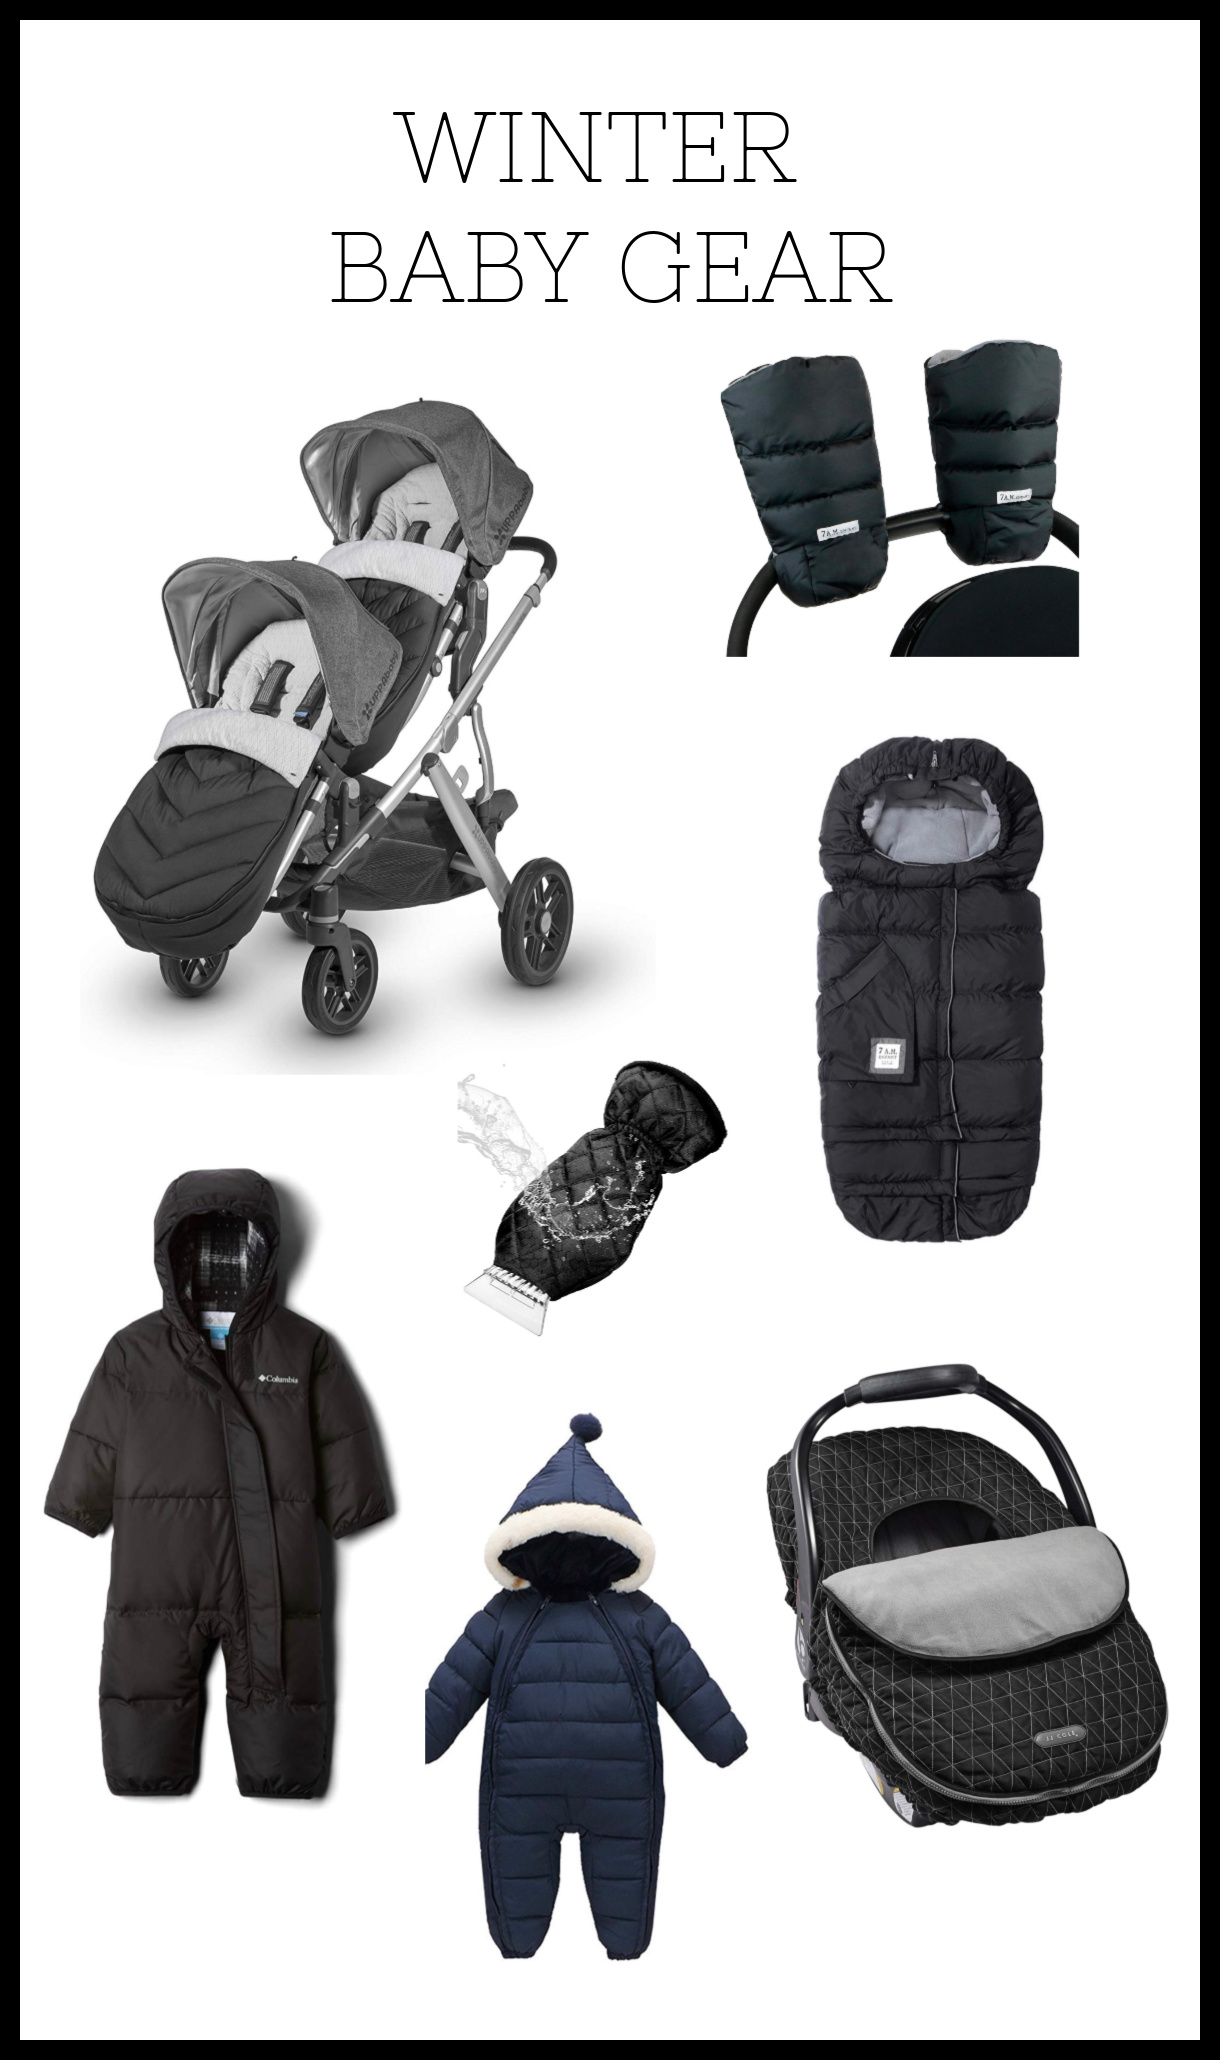 Winter Baby Gear.jpg